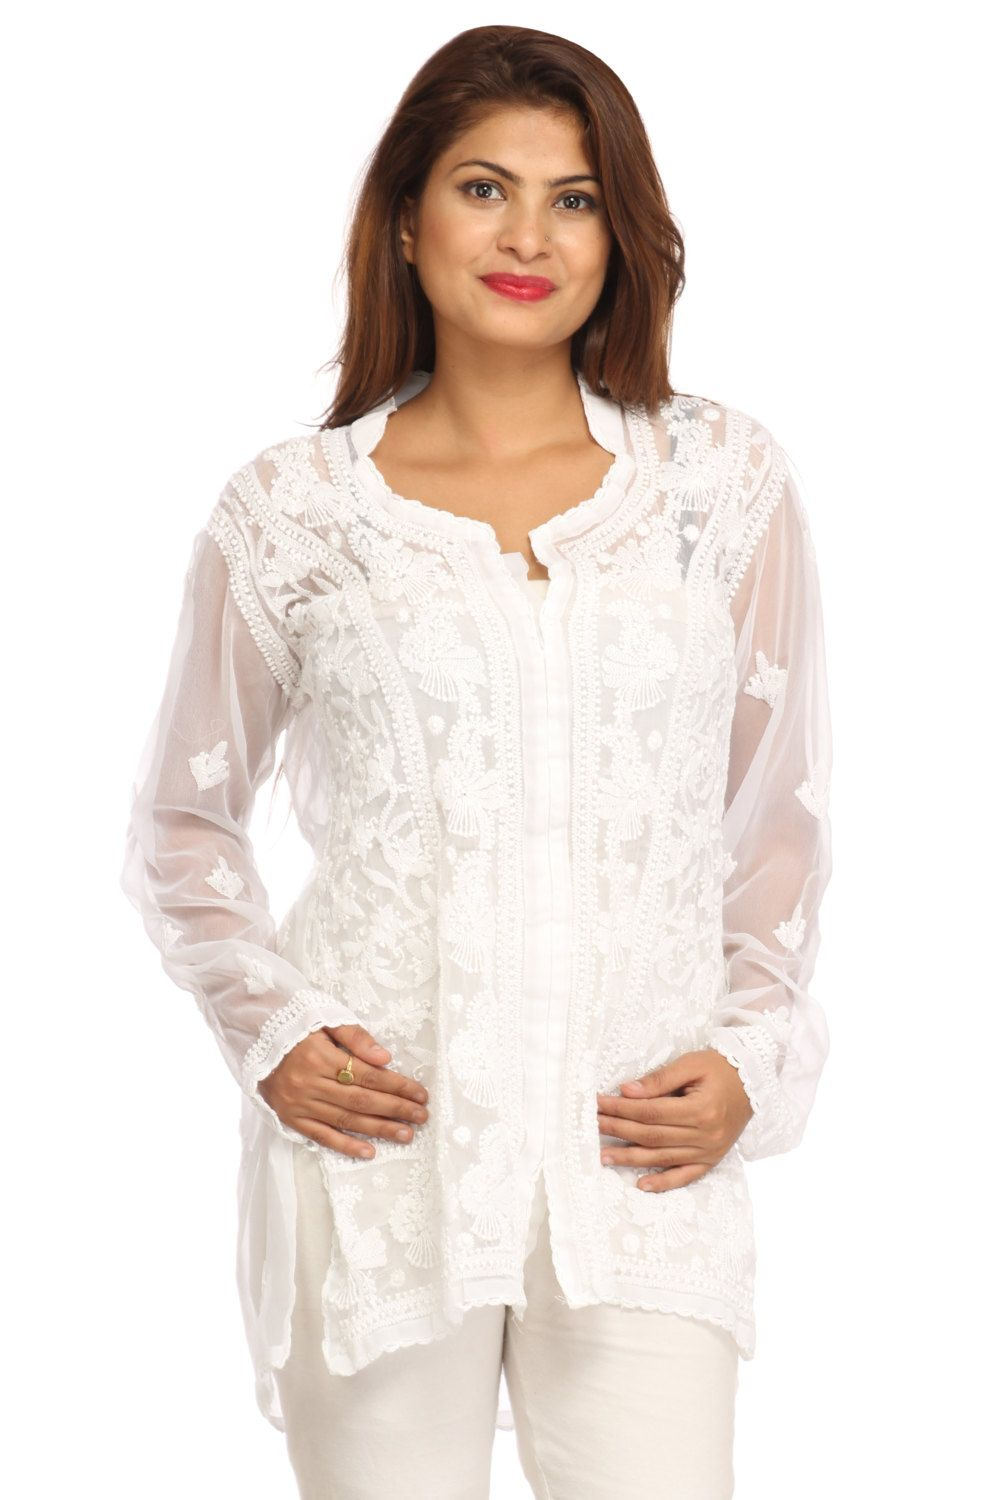 de4f5d8a97c Exotic white Ethnic exclusive designer Lucknow Chikan hand embroidery  kurta/ top /tunic for women / girl / ladies by Indiankala4u on Etsy